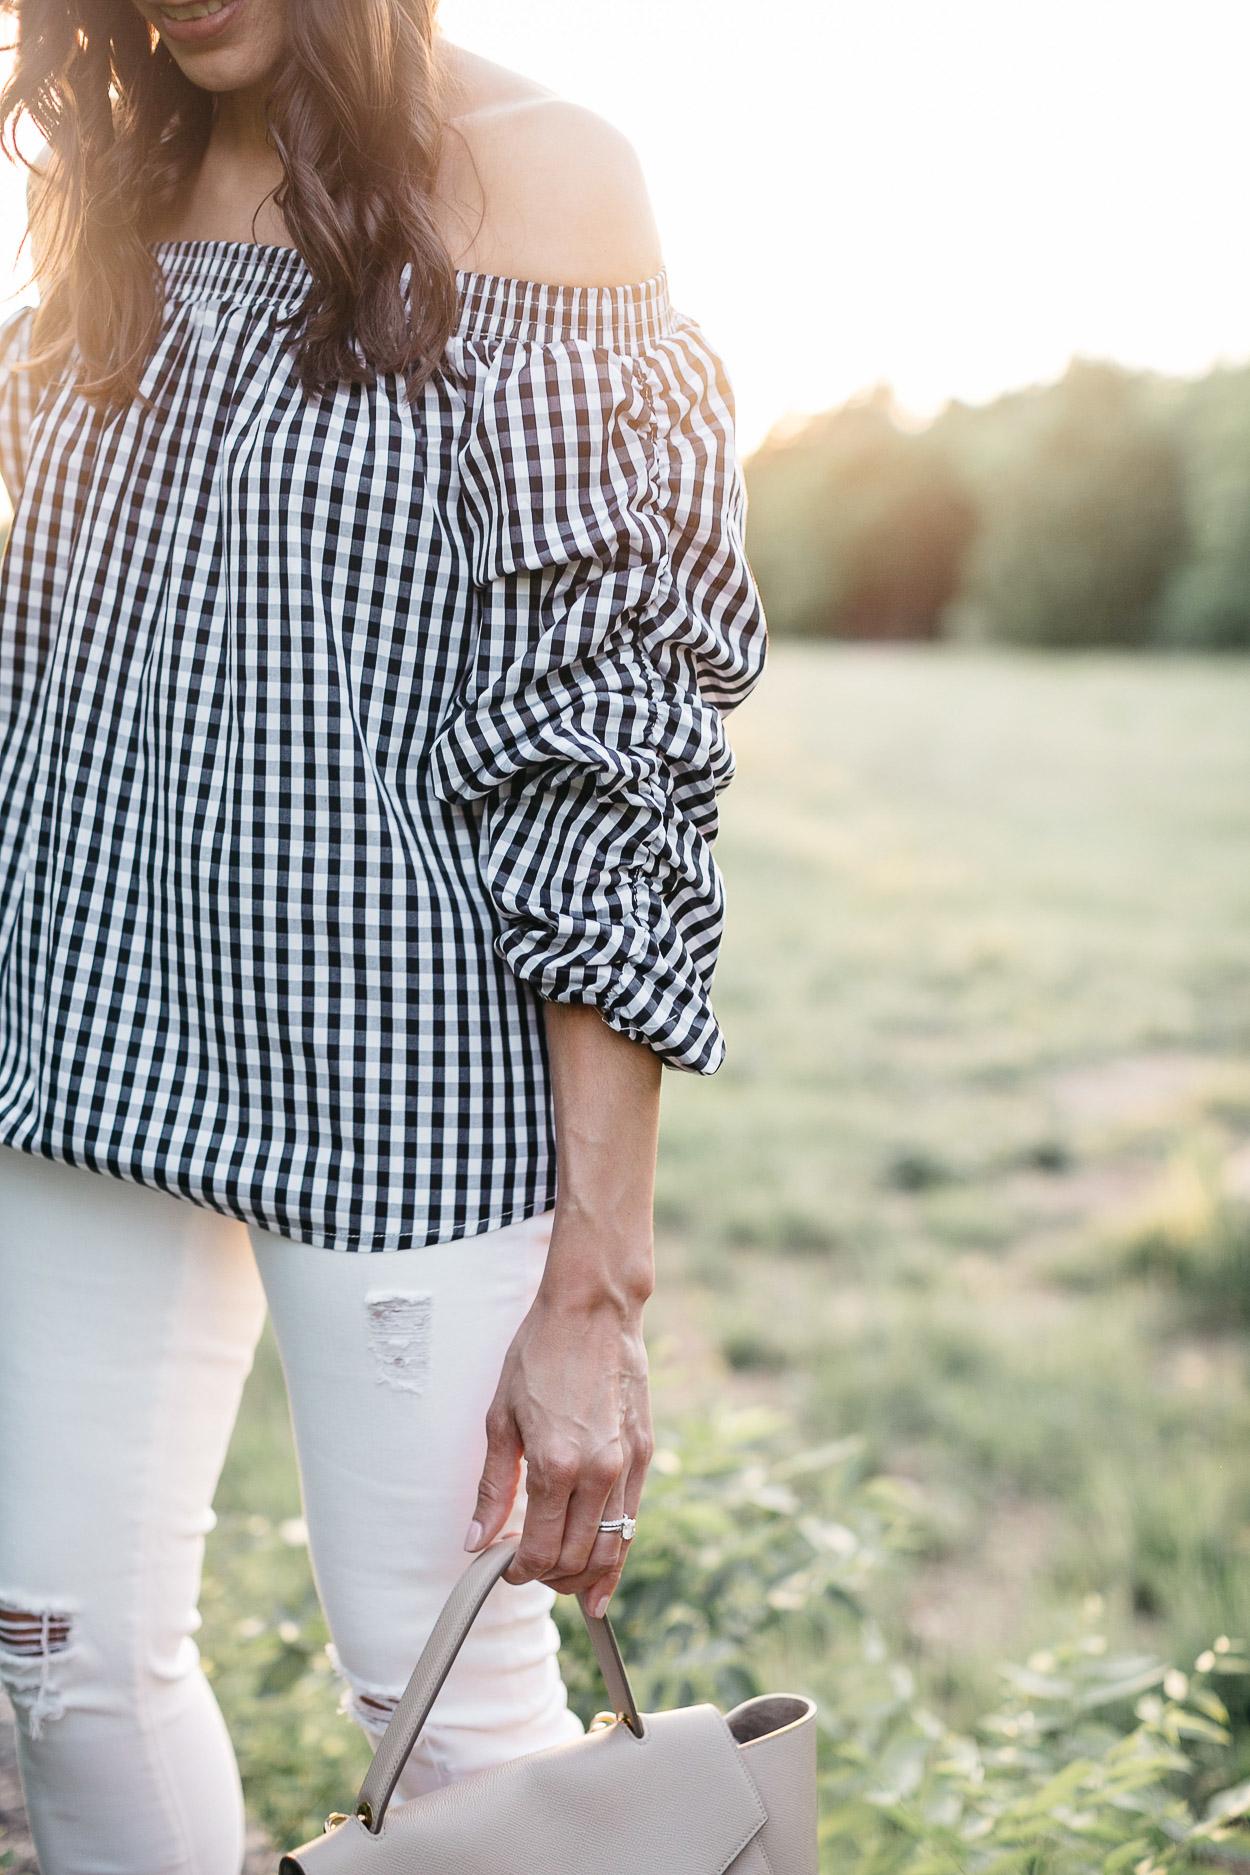 Gingham top is worn off the shoulder by Amanda of AGlamLIfestyle blog to show her Spring style